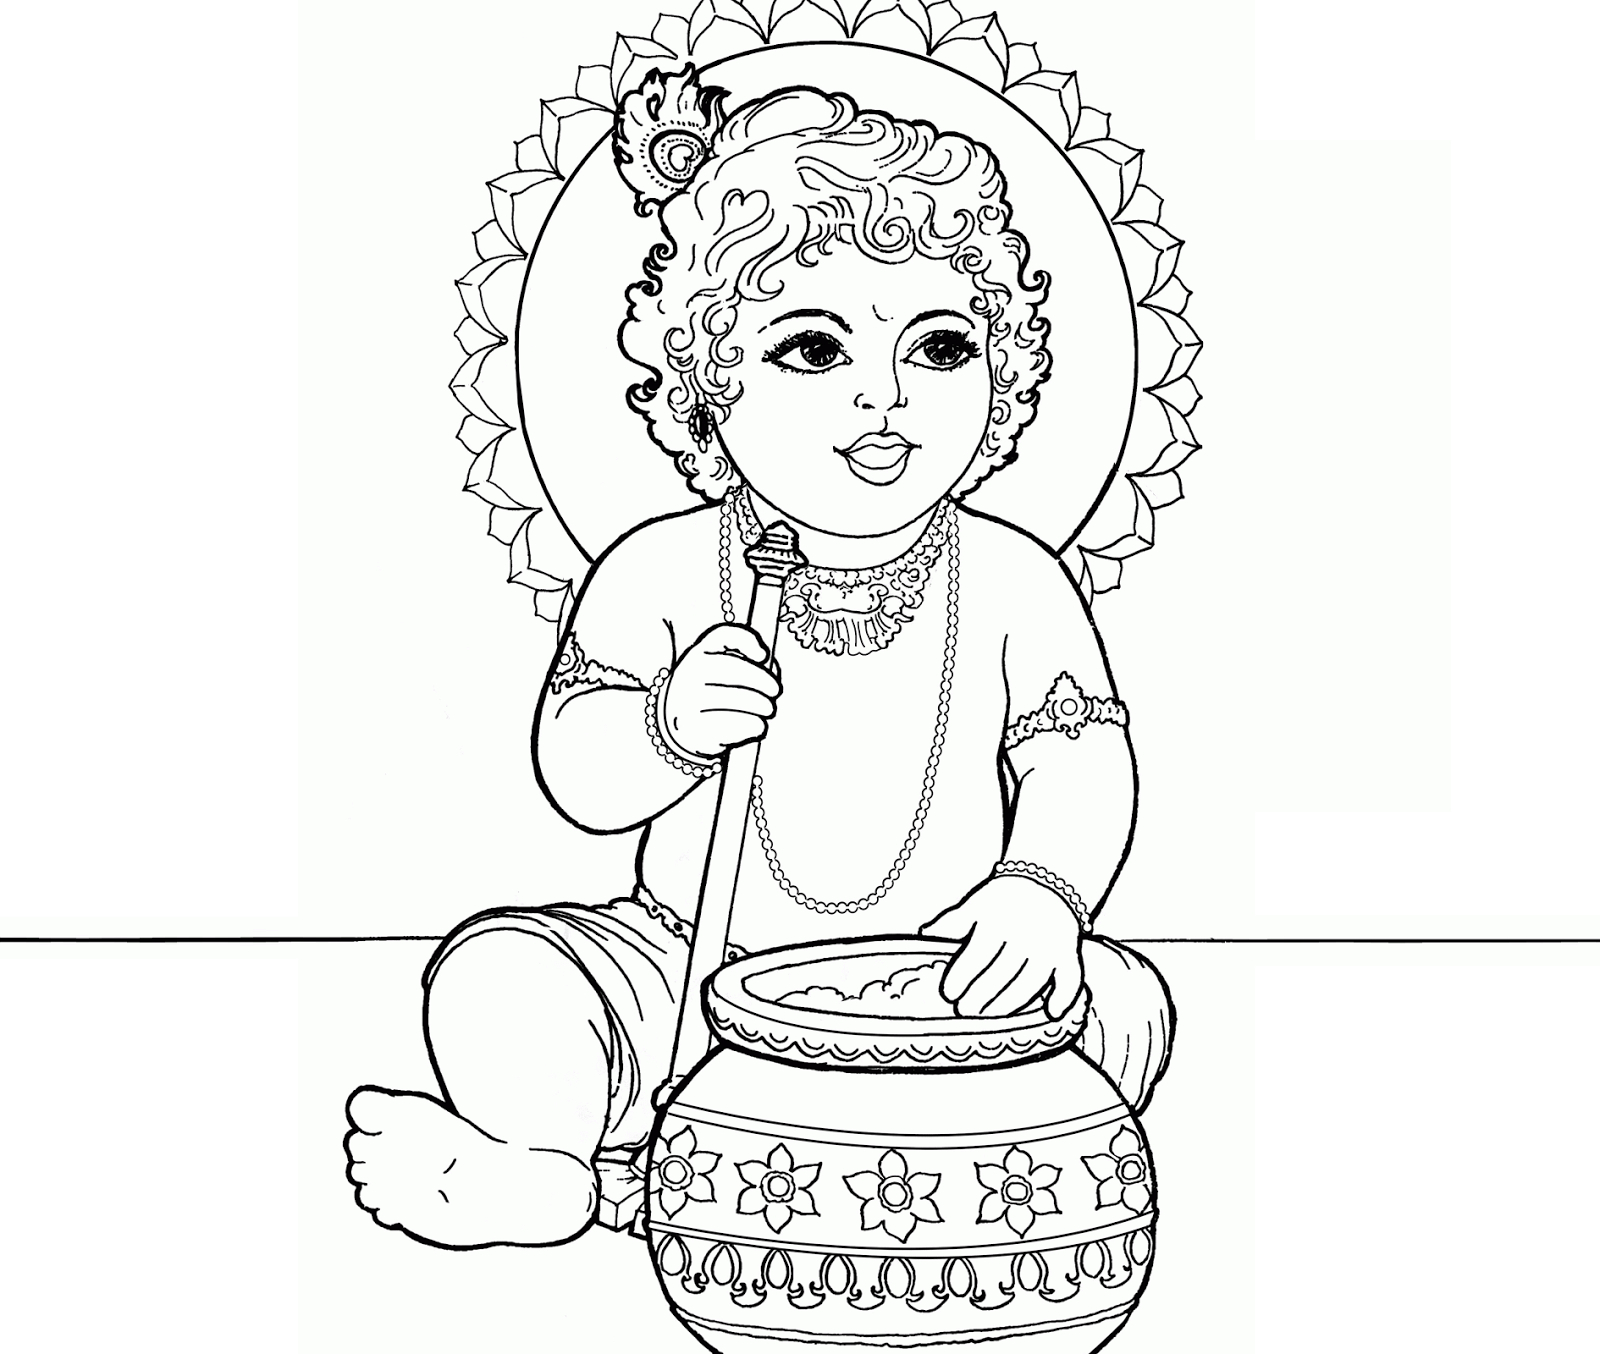 1600x1354 Baby Krishna Pencil Drawing Lord Baby Krishna Pencil Drawing Image